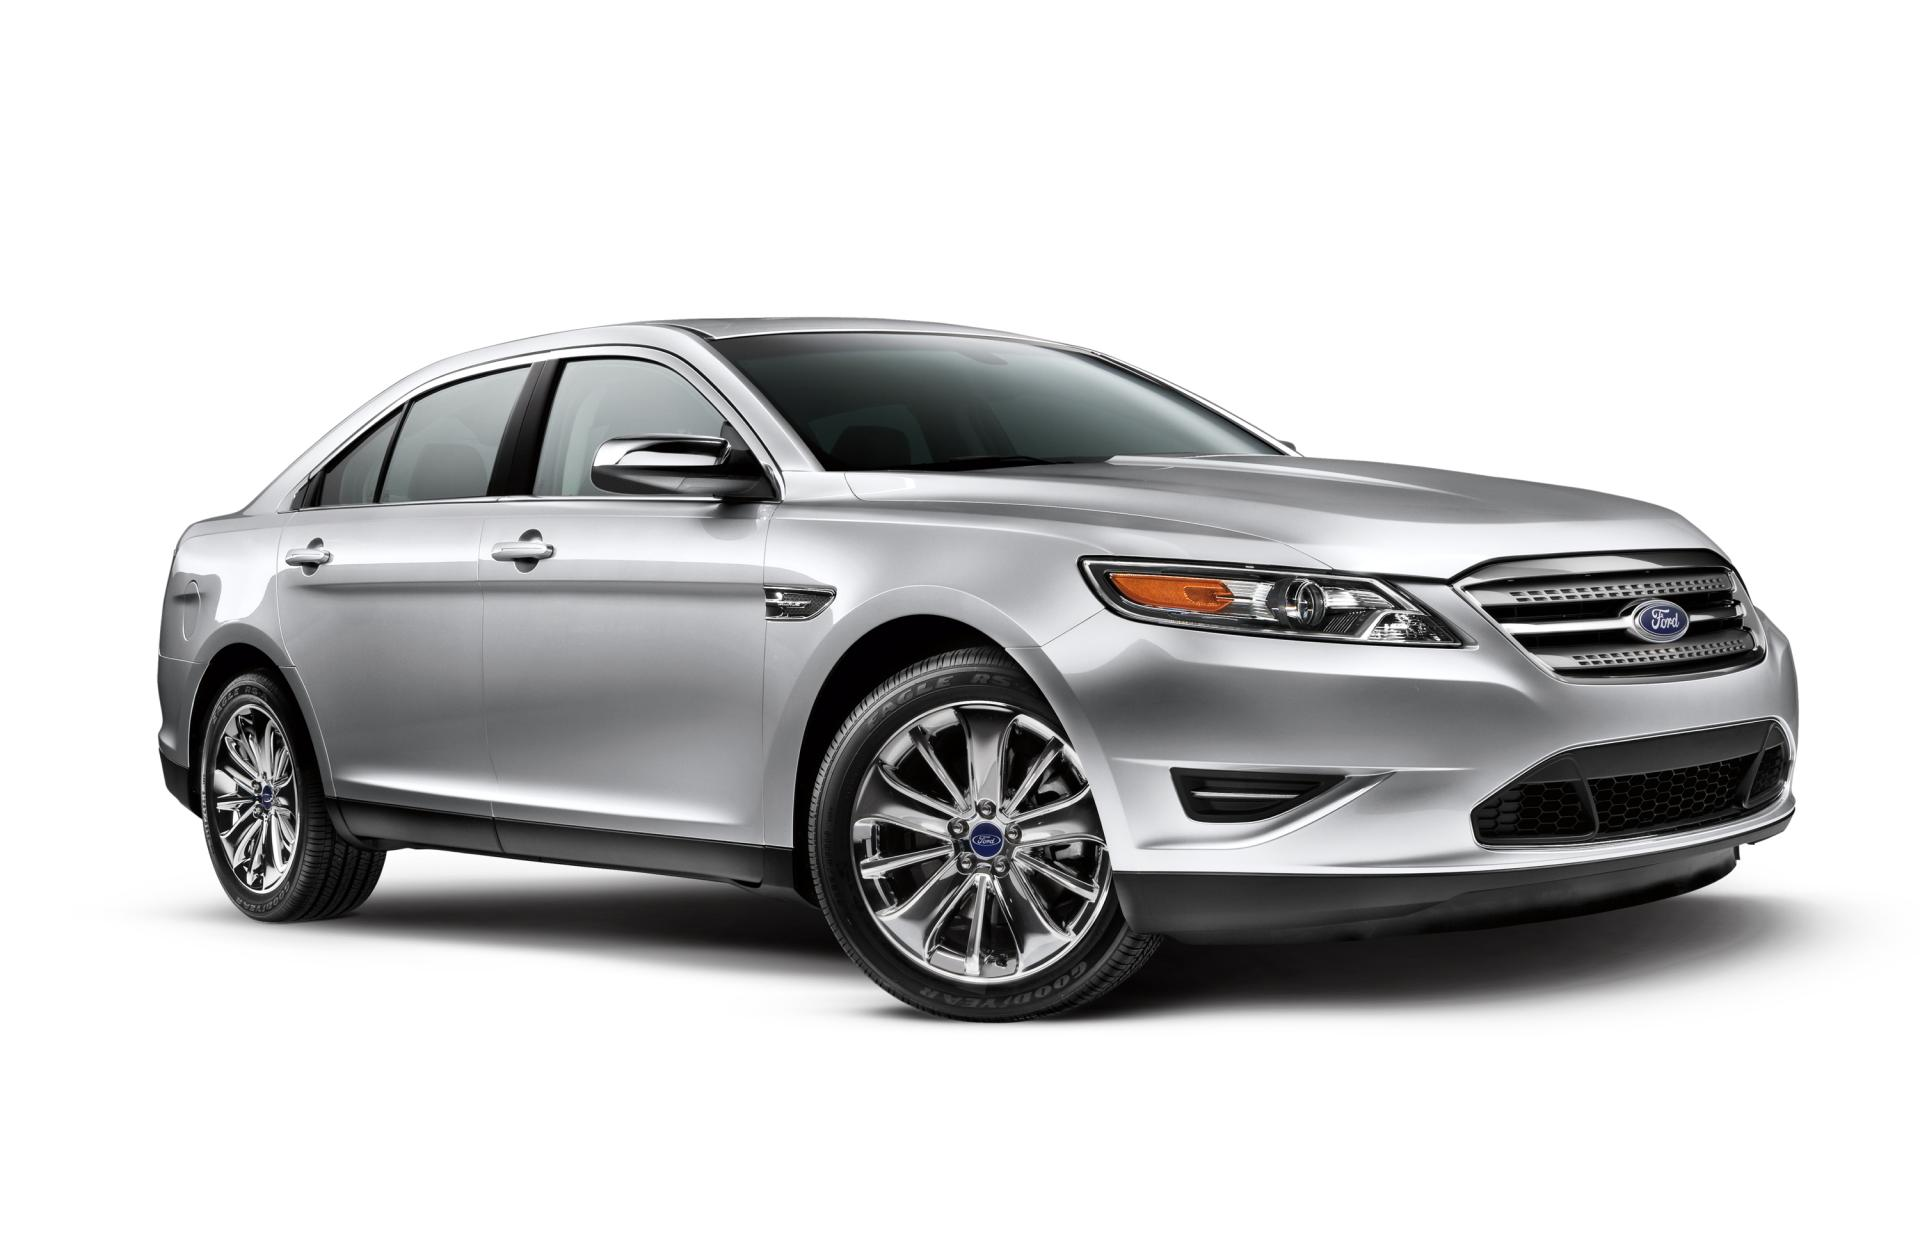 2012 ford taurus technical specifications and data engine dimensions and mechanical details. Black Bedroom Furniture Sets. Home Design Ideas